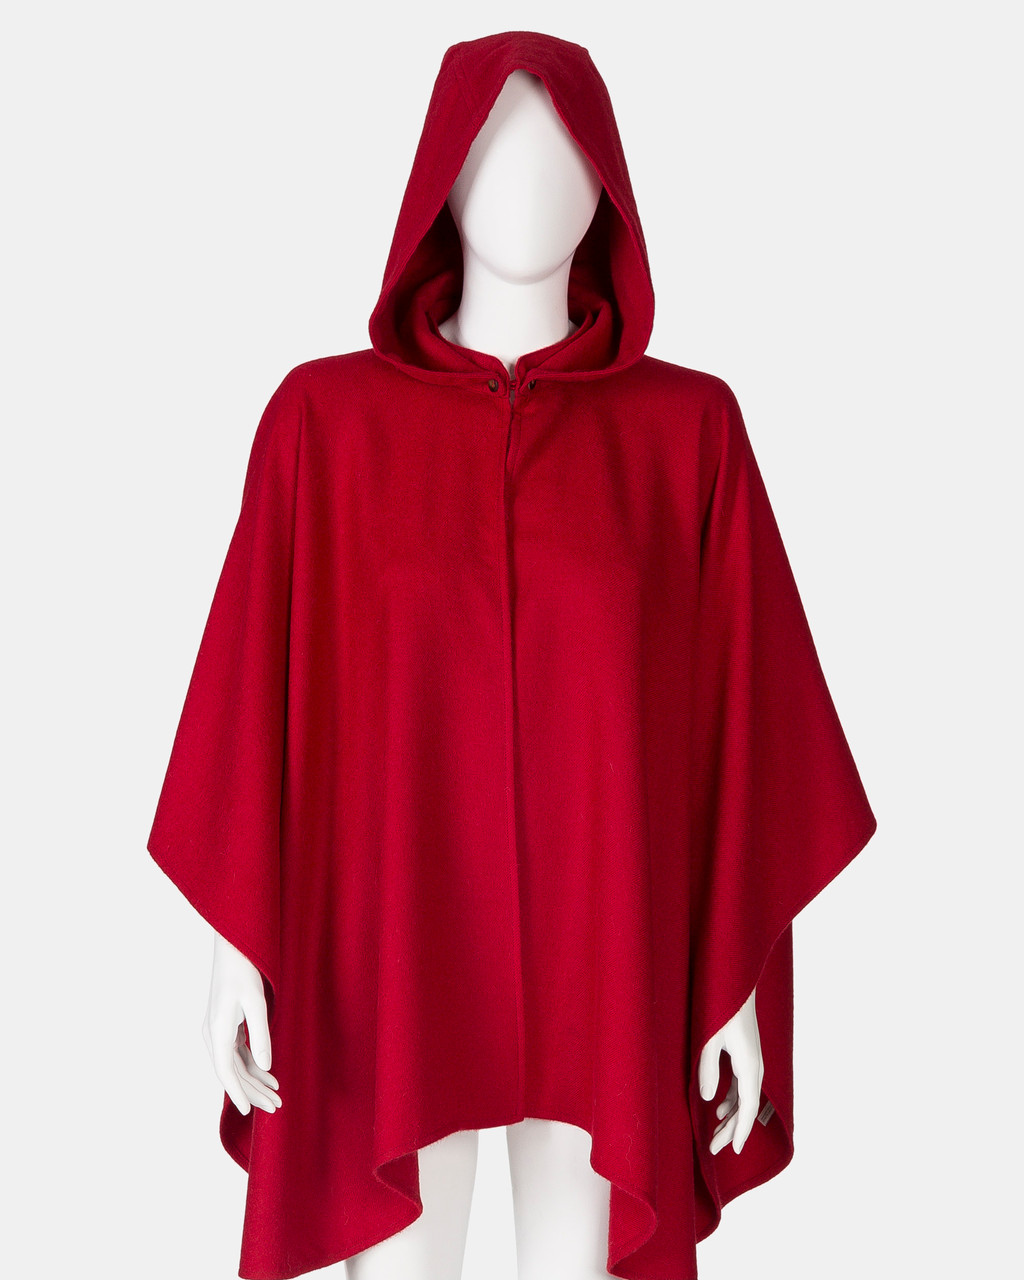 Alicia Adams Alpaca Mao Cape, alpaca poncho cape for women, alpaca poncho, alpaca clothing, alpaca cape, alpaca vs cashmere, scarlet red alpaca cape